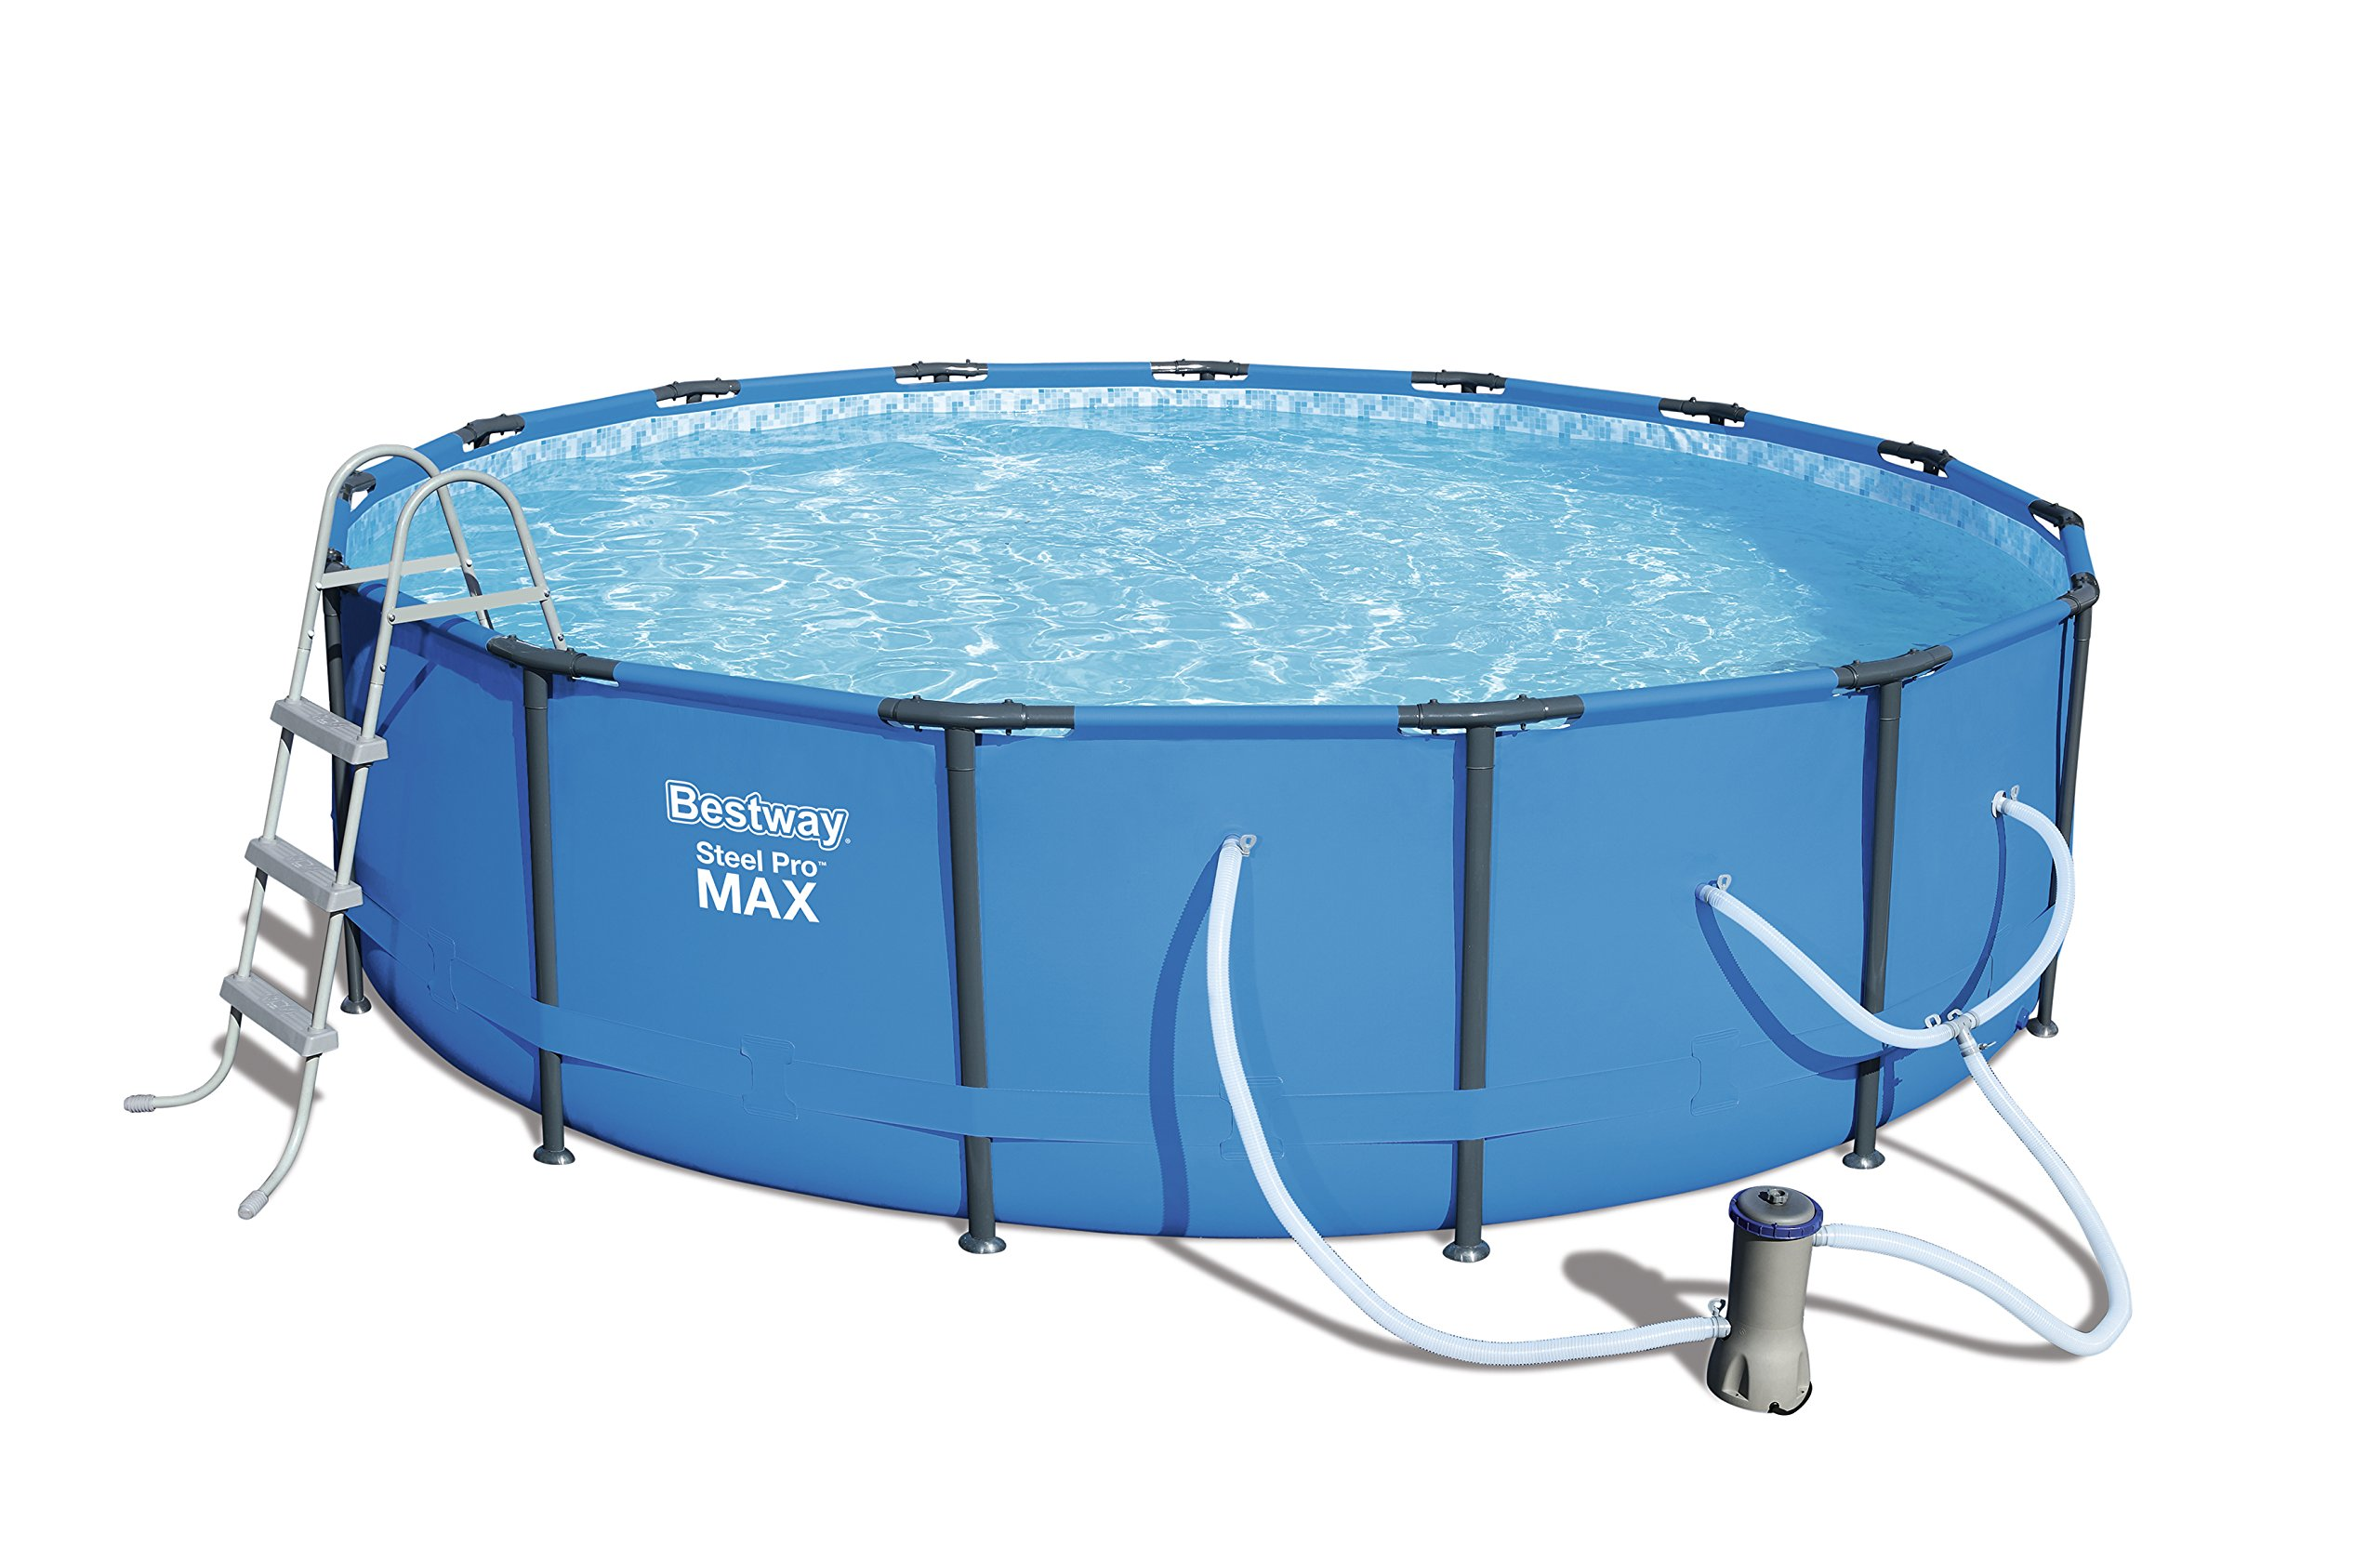 Bestway 56687E Steel Pro MAX 15'x42 Above Ground Pool by Bestway